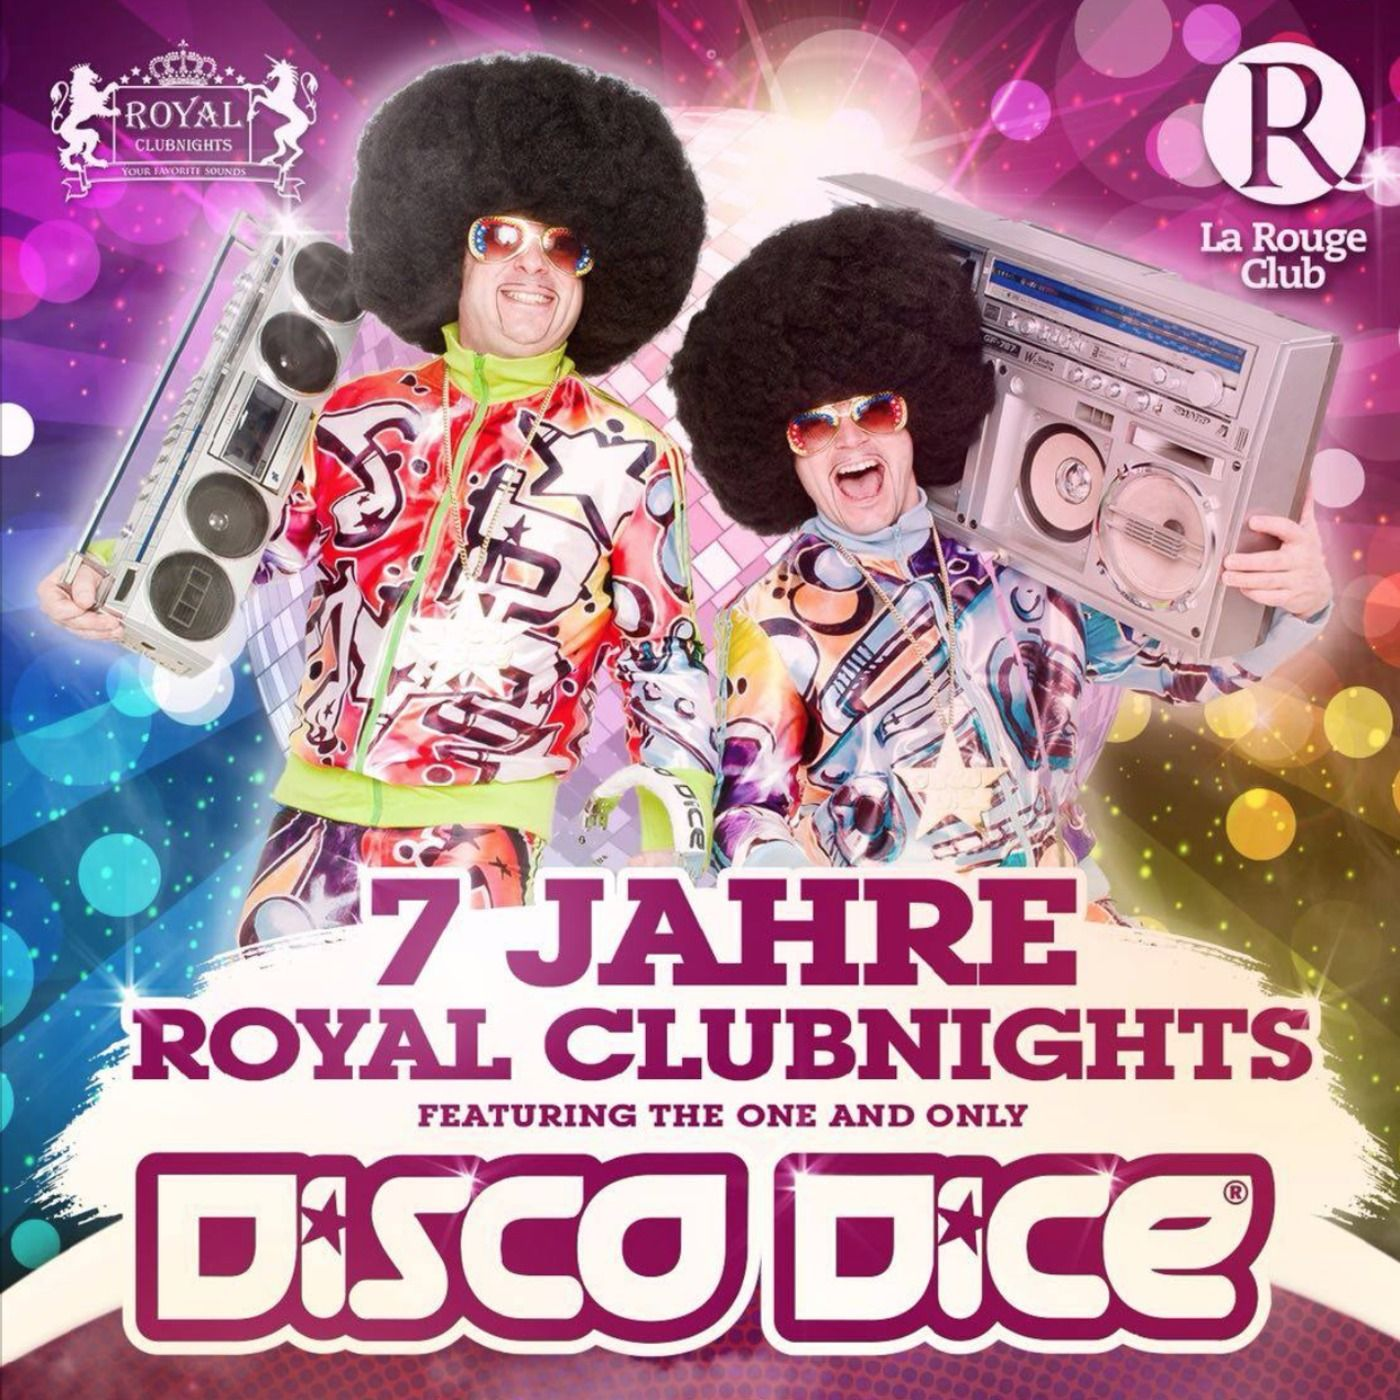 Disco Dice live @ 7 Jahre Royal Clubnights @ LaRougeClub